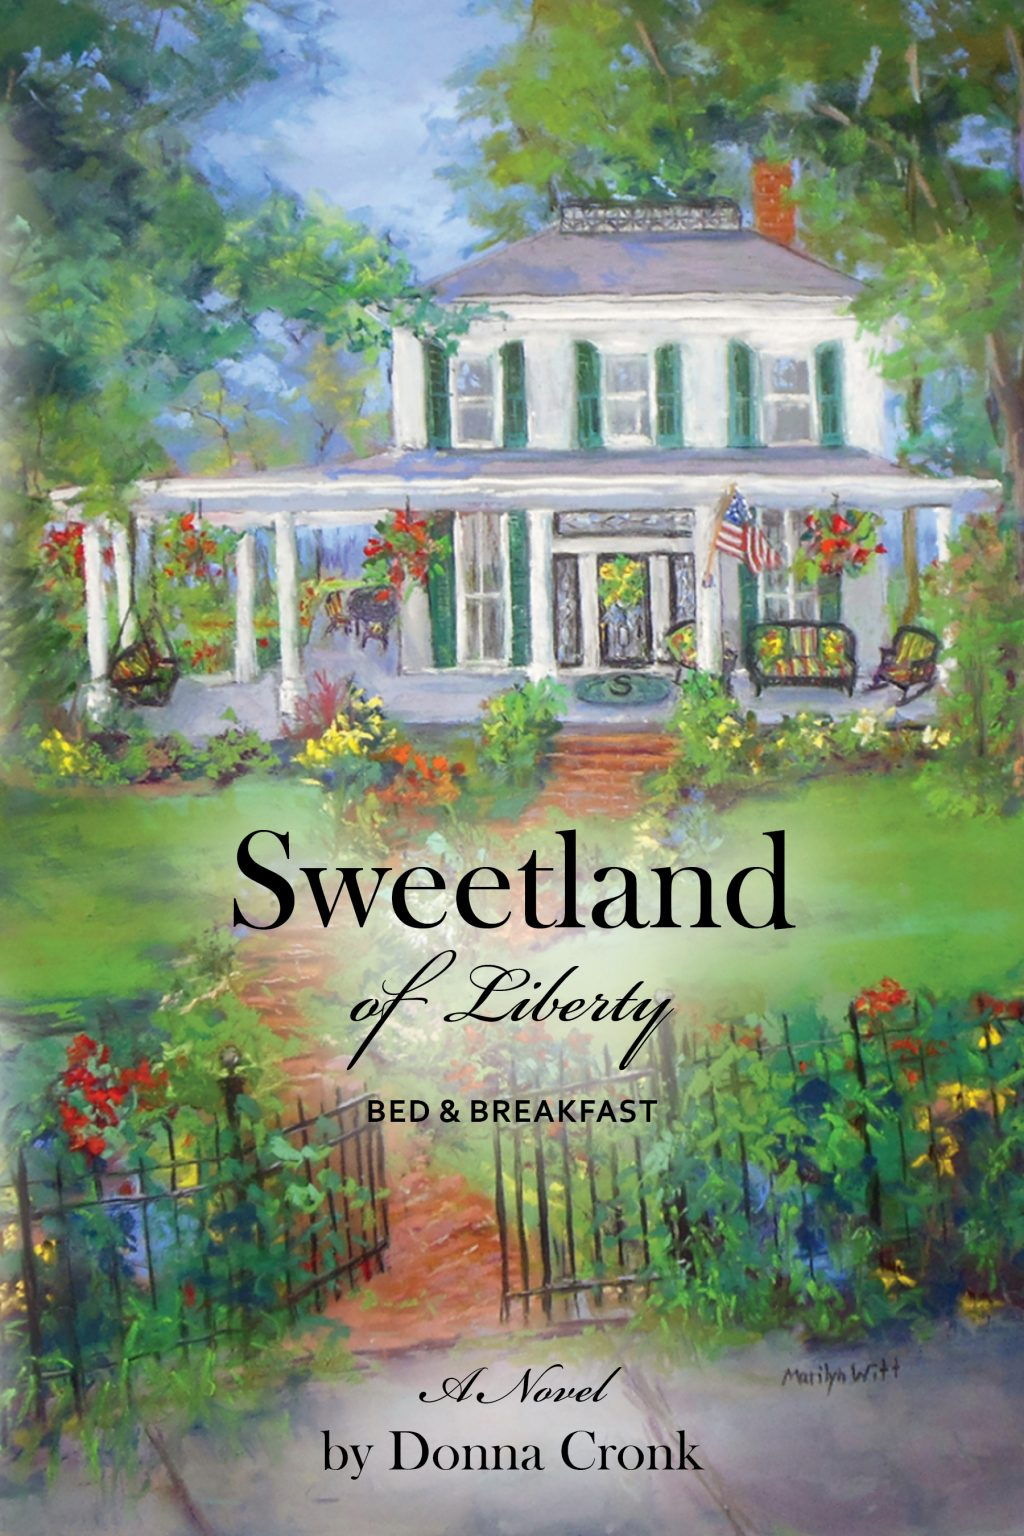 Sweetland of Liberty by Donna Cronk